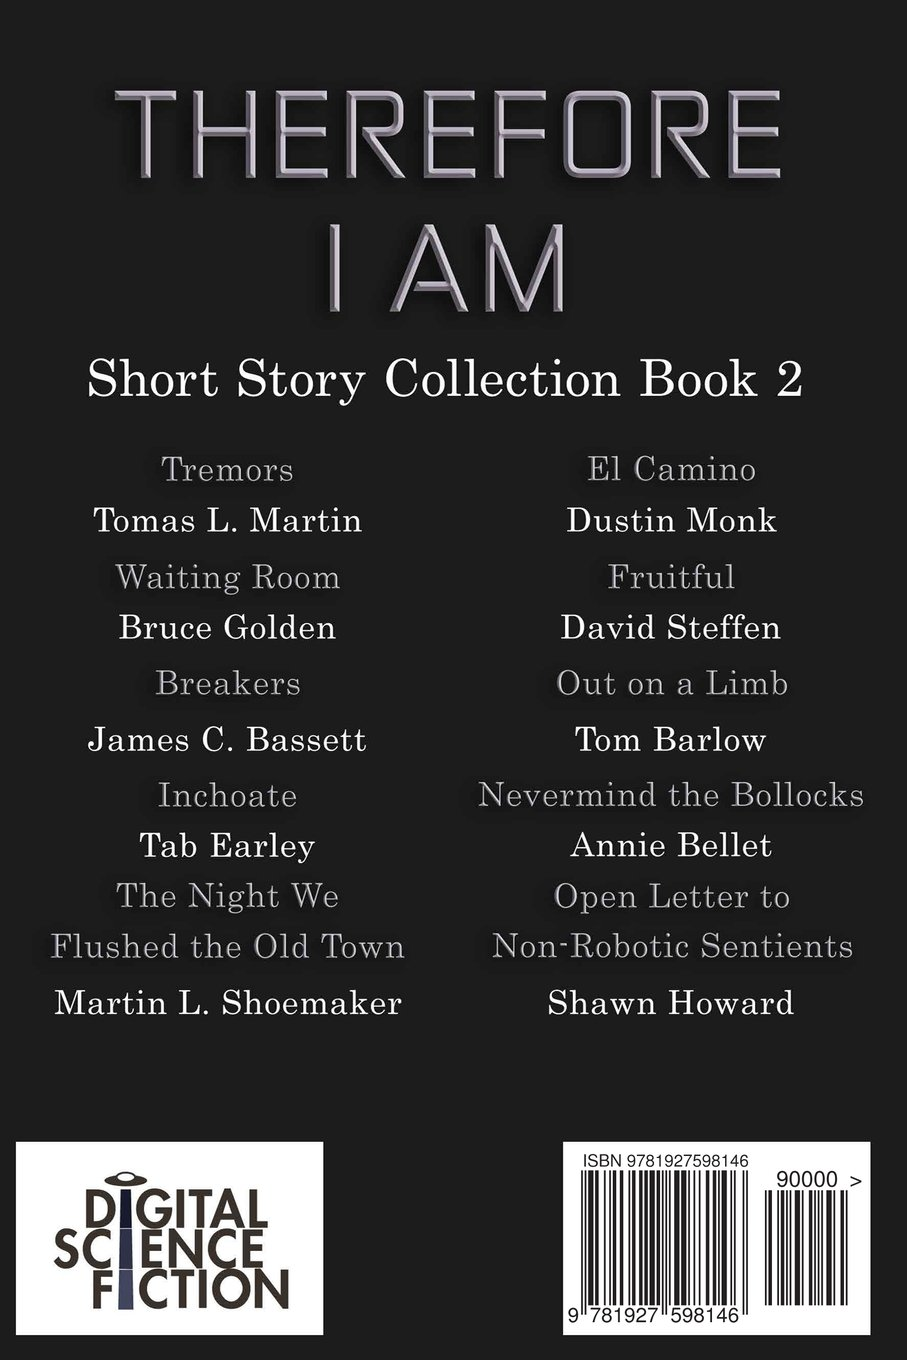 Fiction Short Stories Series One) (volume 2): Annie Bellet, Tom Barlow,  David Steffen, Martin L Shoemaker, Tab Earley, James C Bassett, Bruce  Golden,